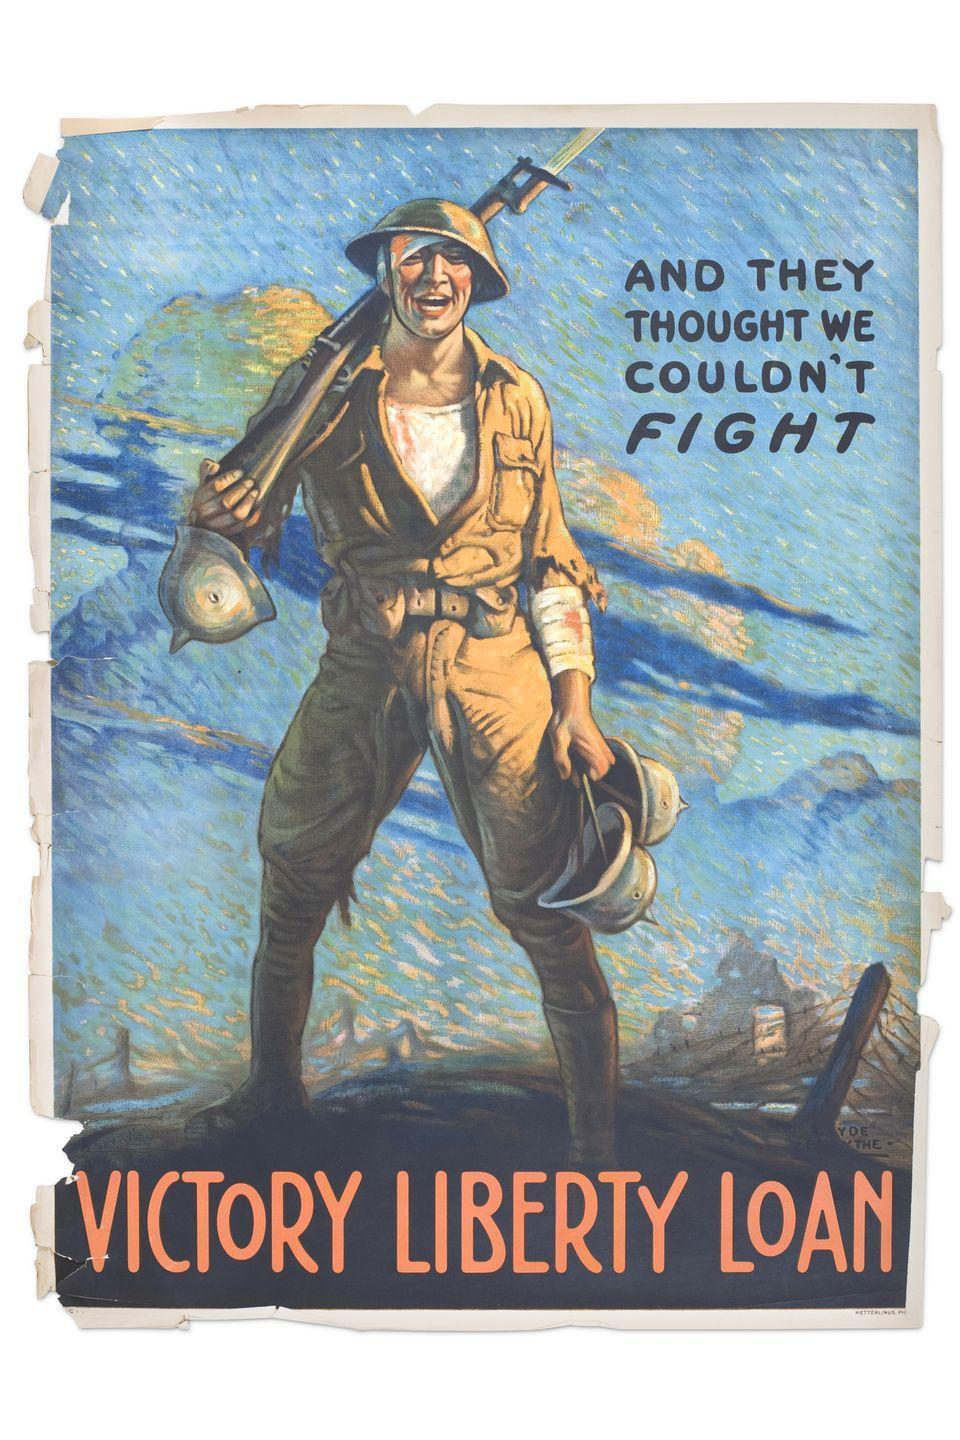 <p><strong>What it was worth (2001):</strong> $1,000</p><p><strong>What it's worth now:</strong> $500</p><p>This poster from World War I was likely an advertisement for war bonds.</p>